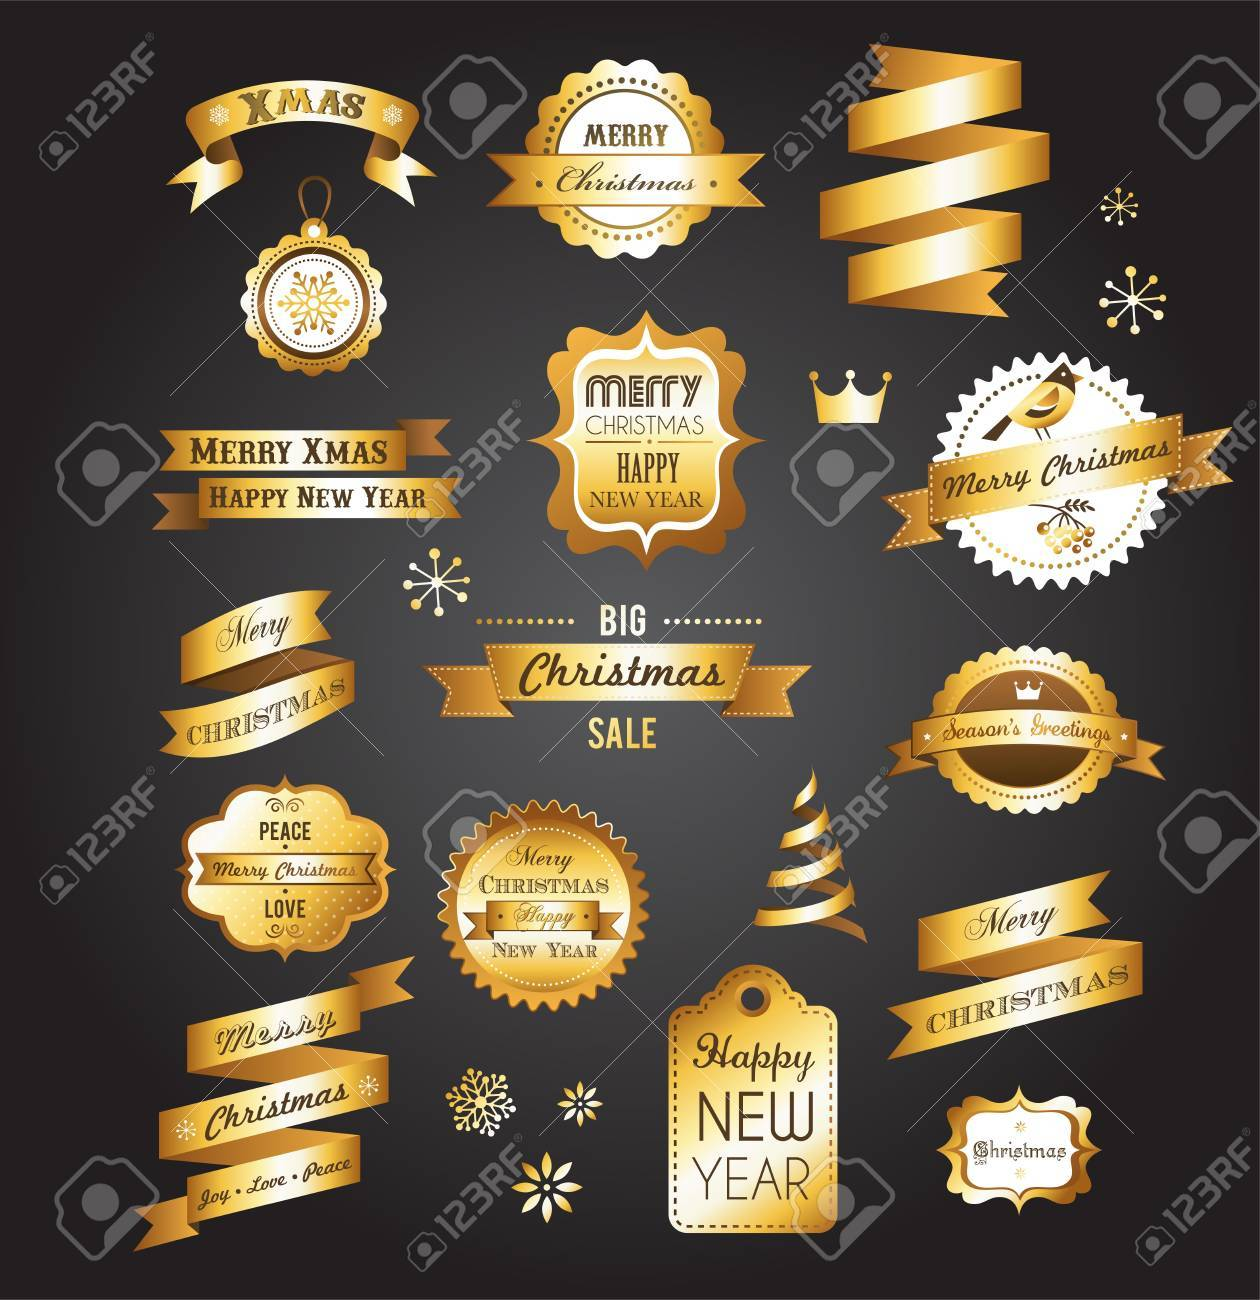 Christmas gold vintage labels, elements and illustrations Stock Vector - 16001683